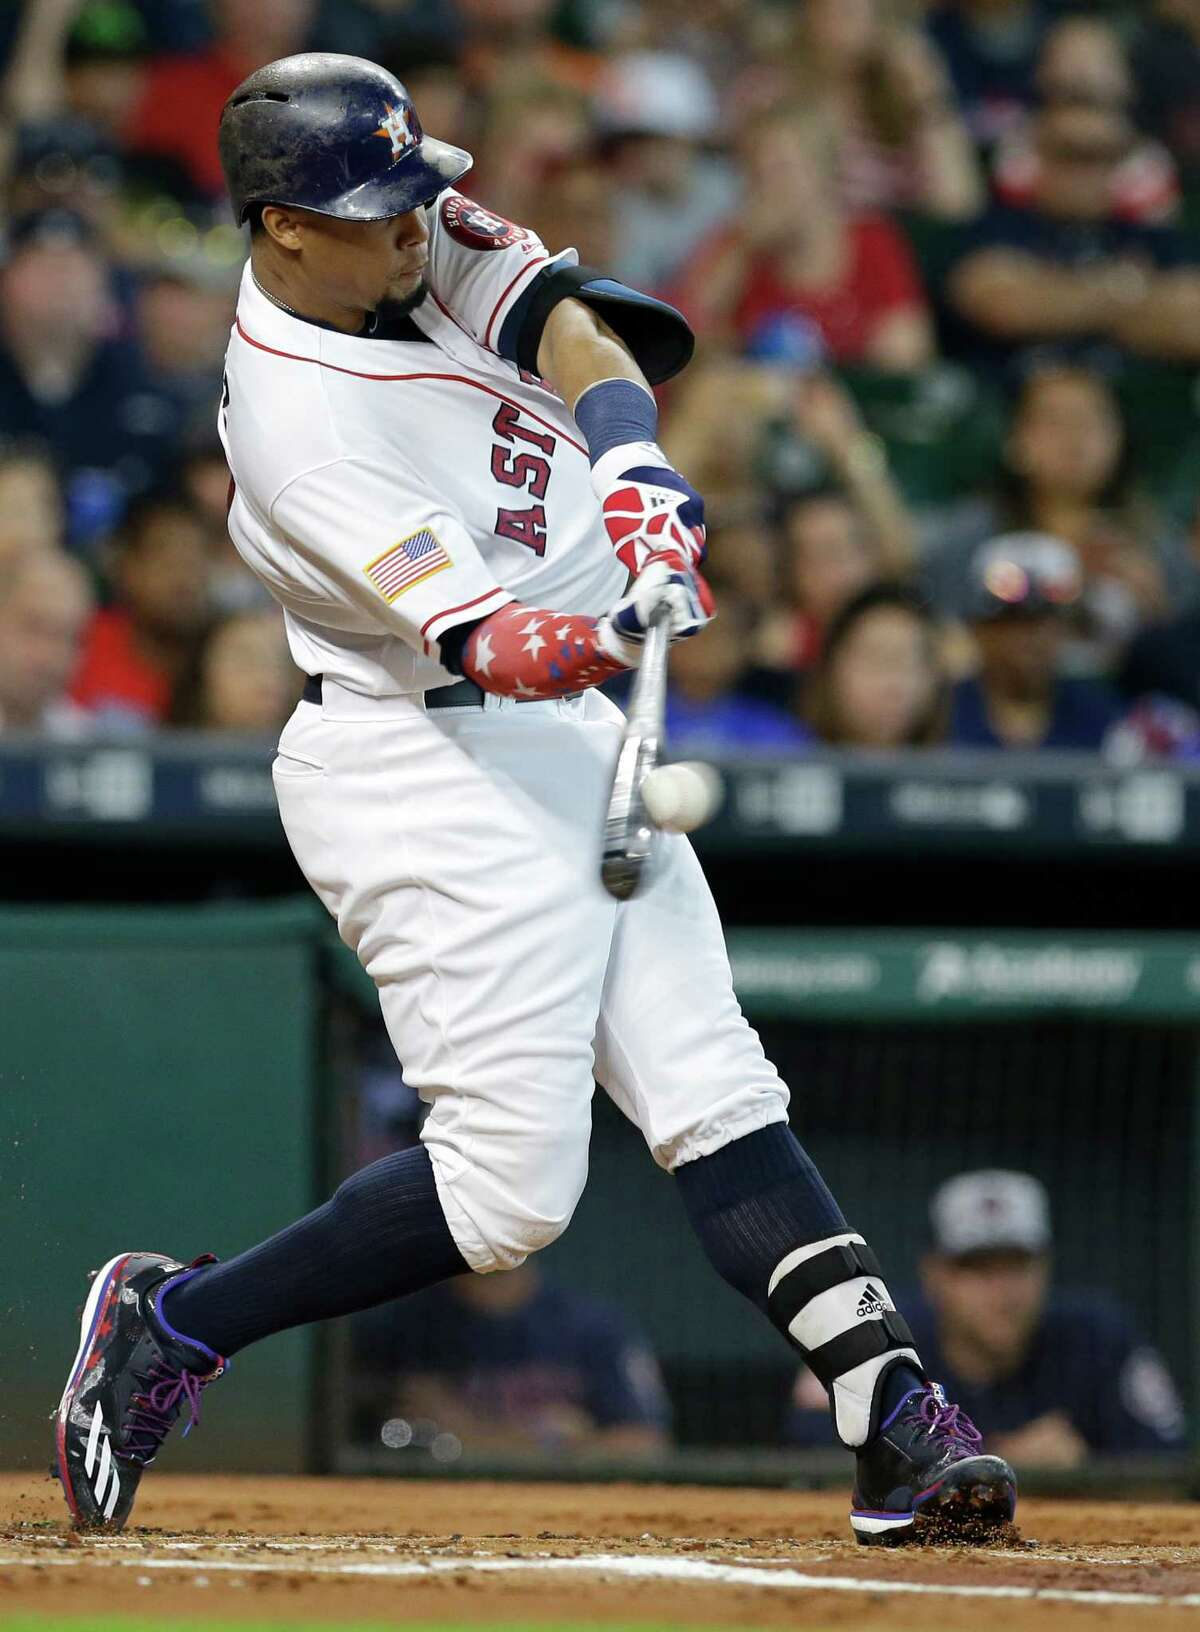 Houston Astros Carlos Gomez hits against the Seattle Mariners during the first inning at Minute Maid Park Monday, July 4, 2016, in Houston.